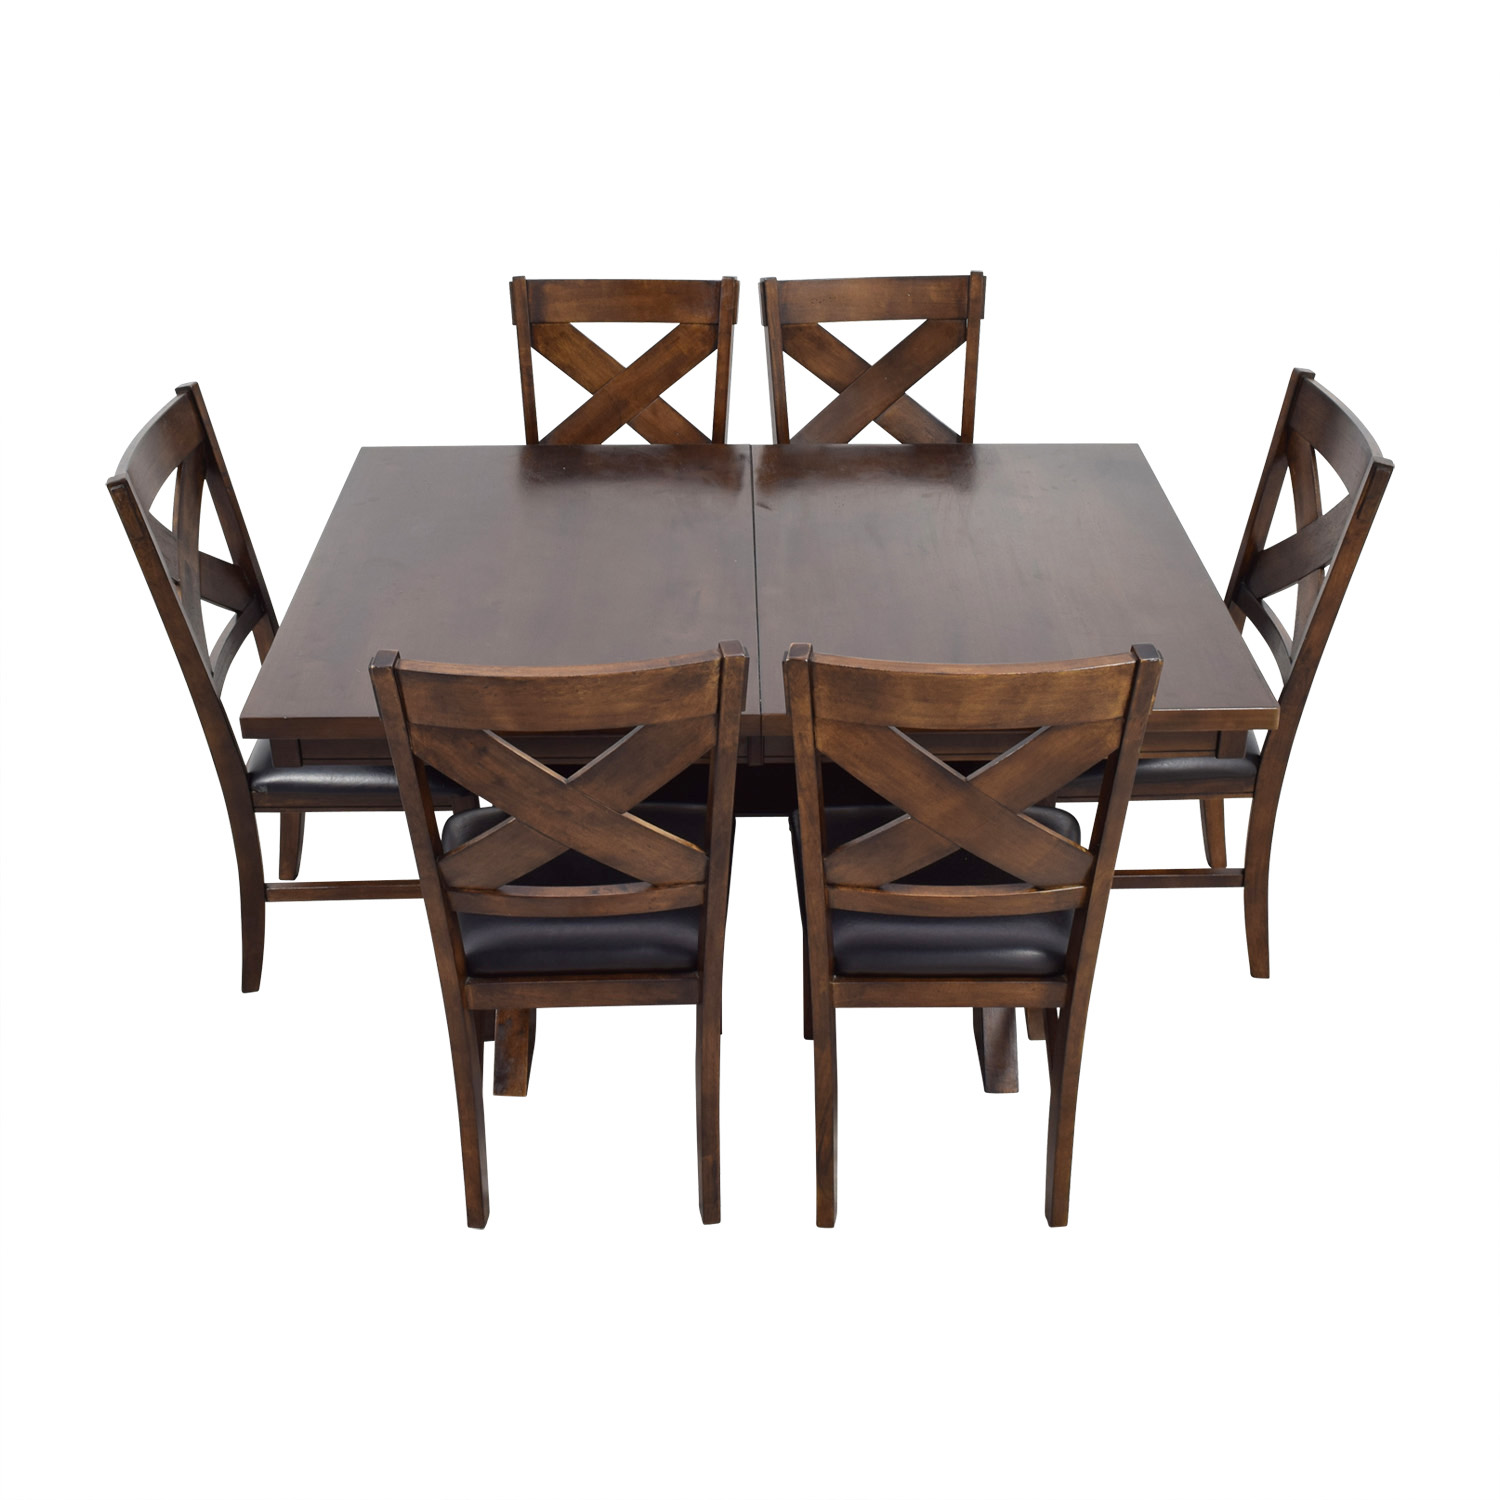 Green River Wood Green River Wood Dining Set with Black Leather Chairs discount